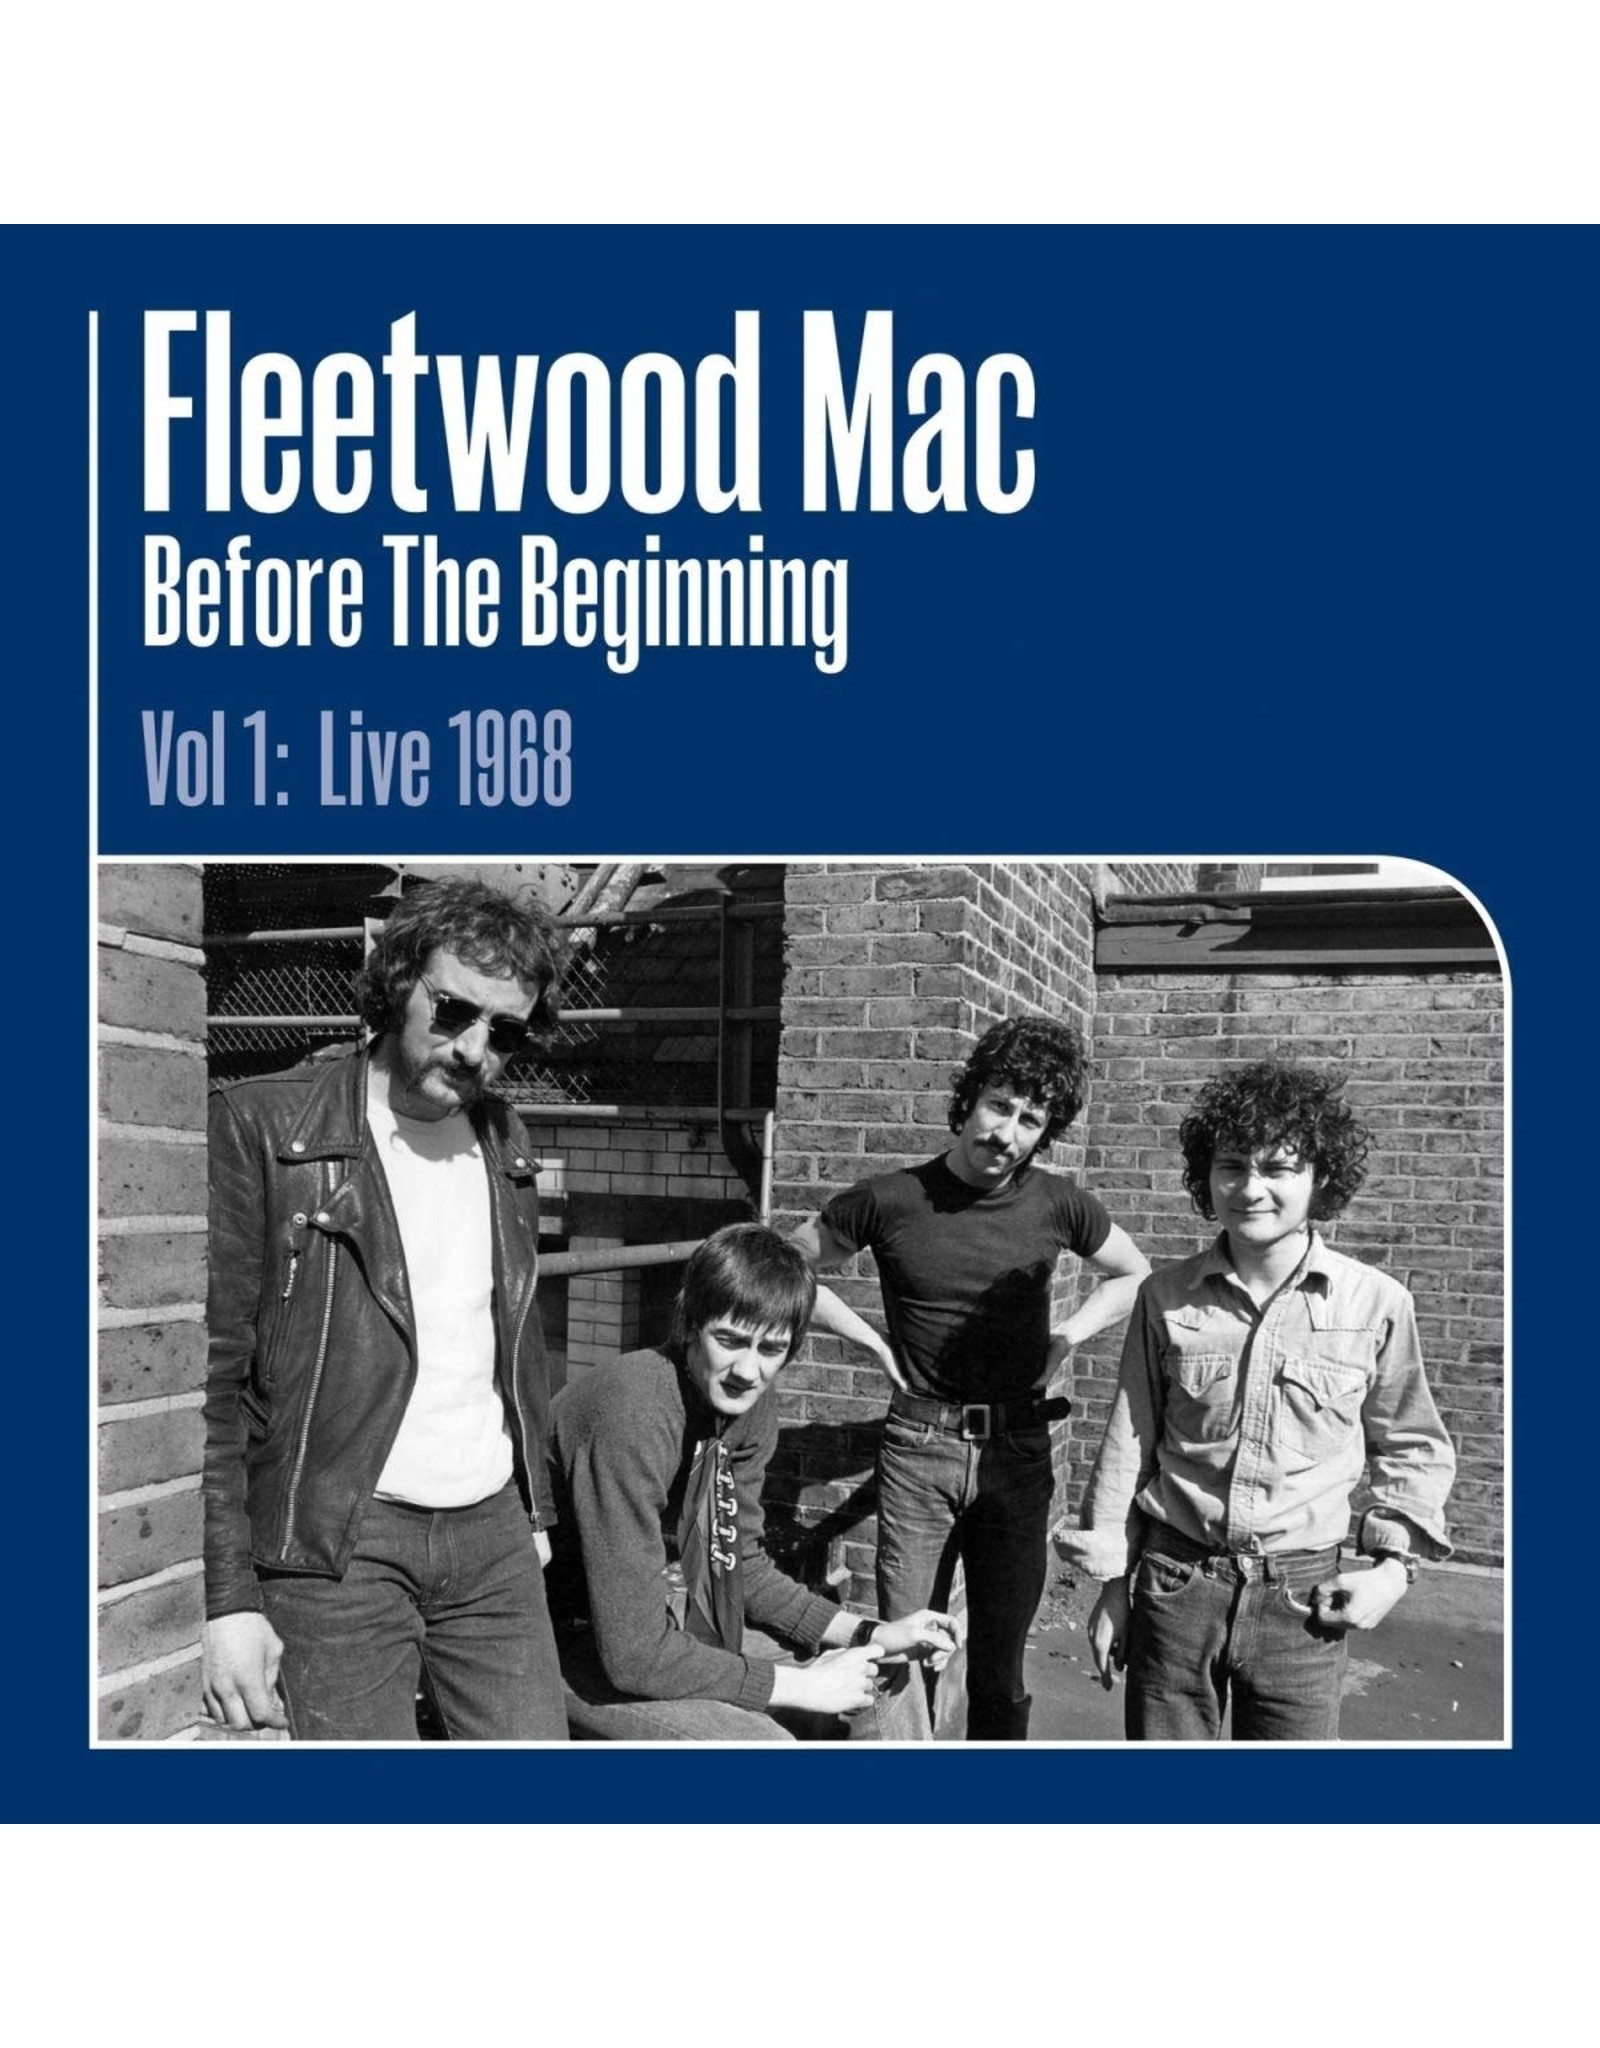 Fleetwood Mac - Before The Beginning (Vol. 1: Live 1968)